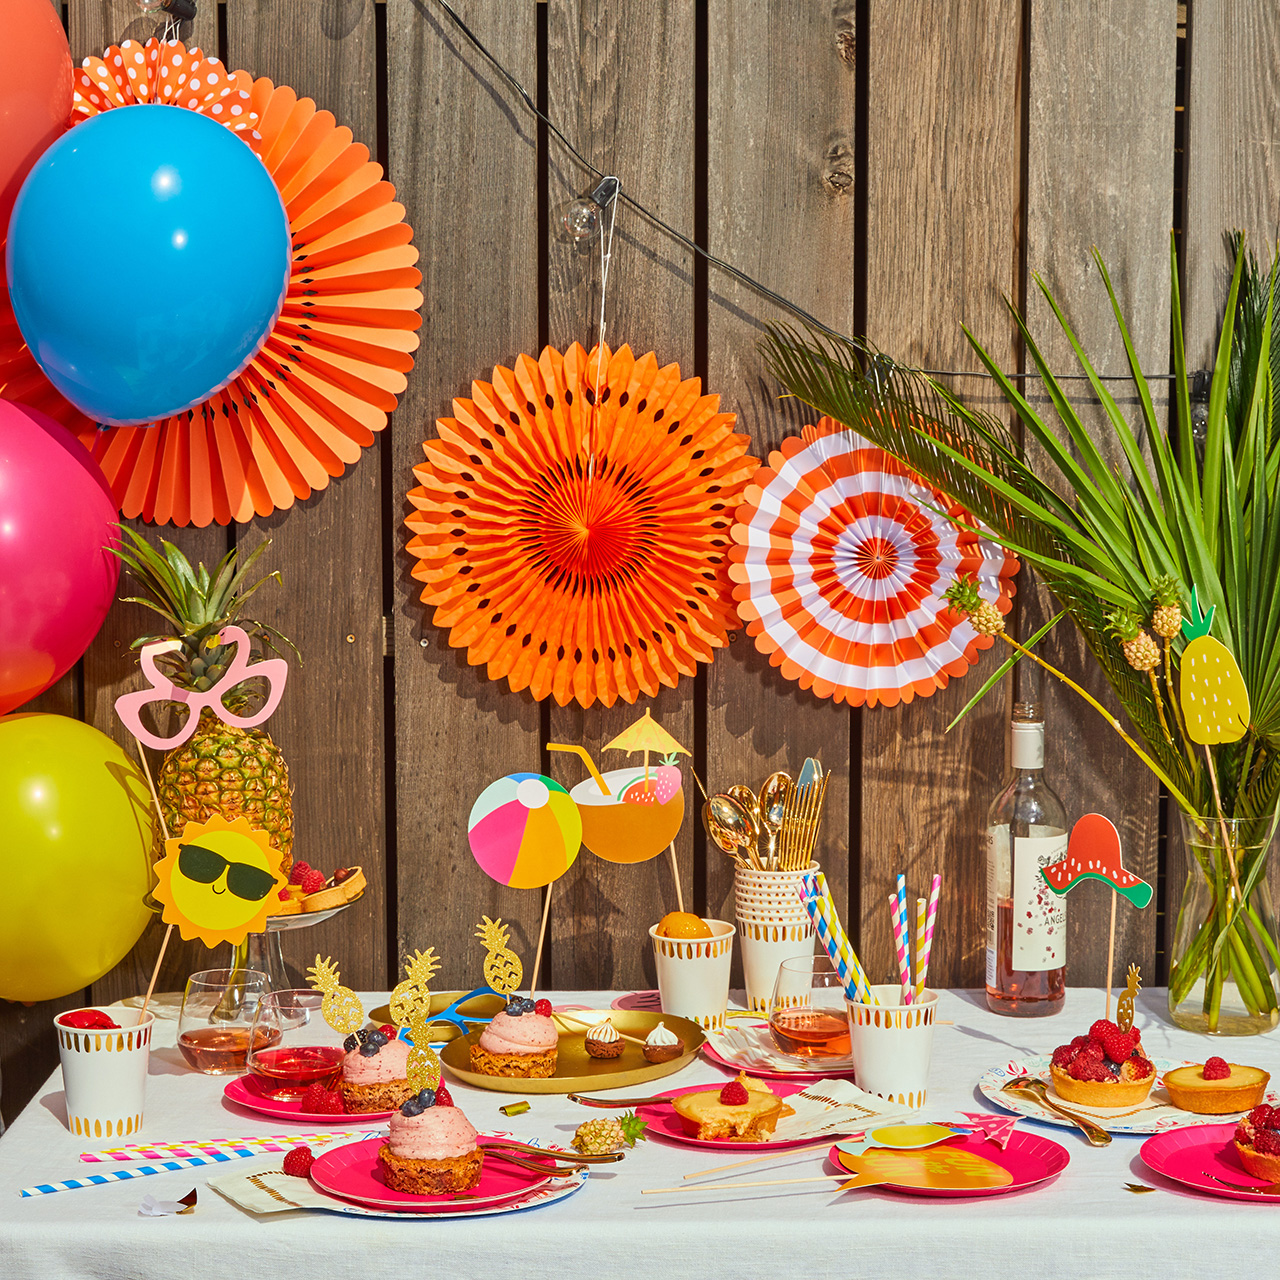 Coterie-Beach-1 Easy Outdoor Summer Entertaining Tips from Co-Founders of Coterie